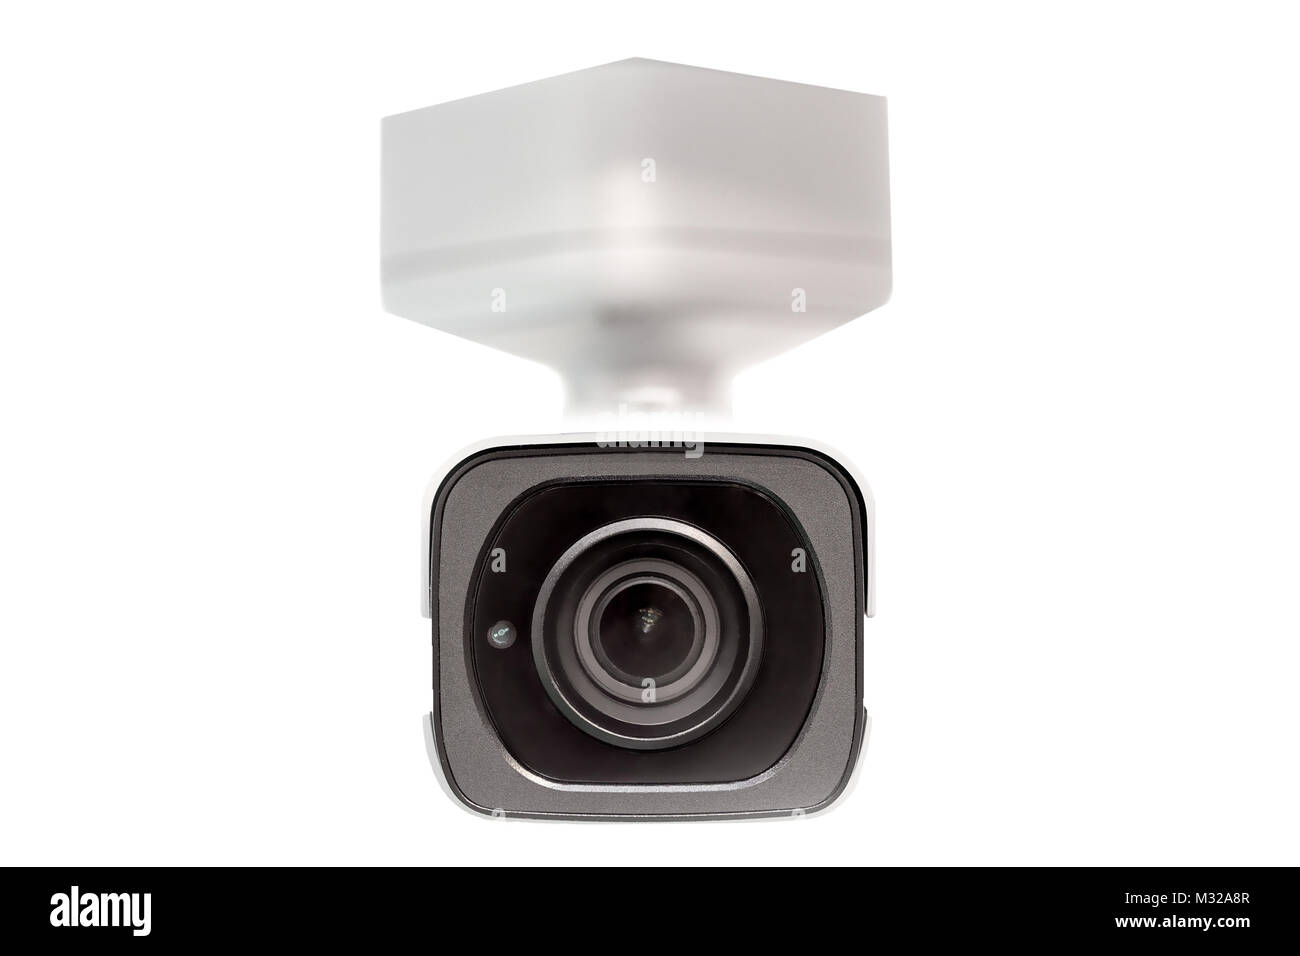 White surveillance  camera  .CCTV isolated on white. Front face lens view.  Close up. Under the dome concept. - Stock Image